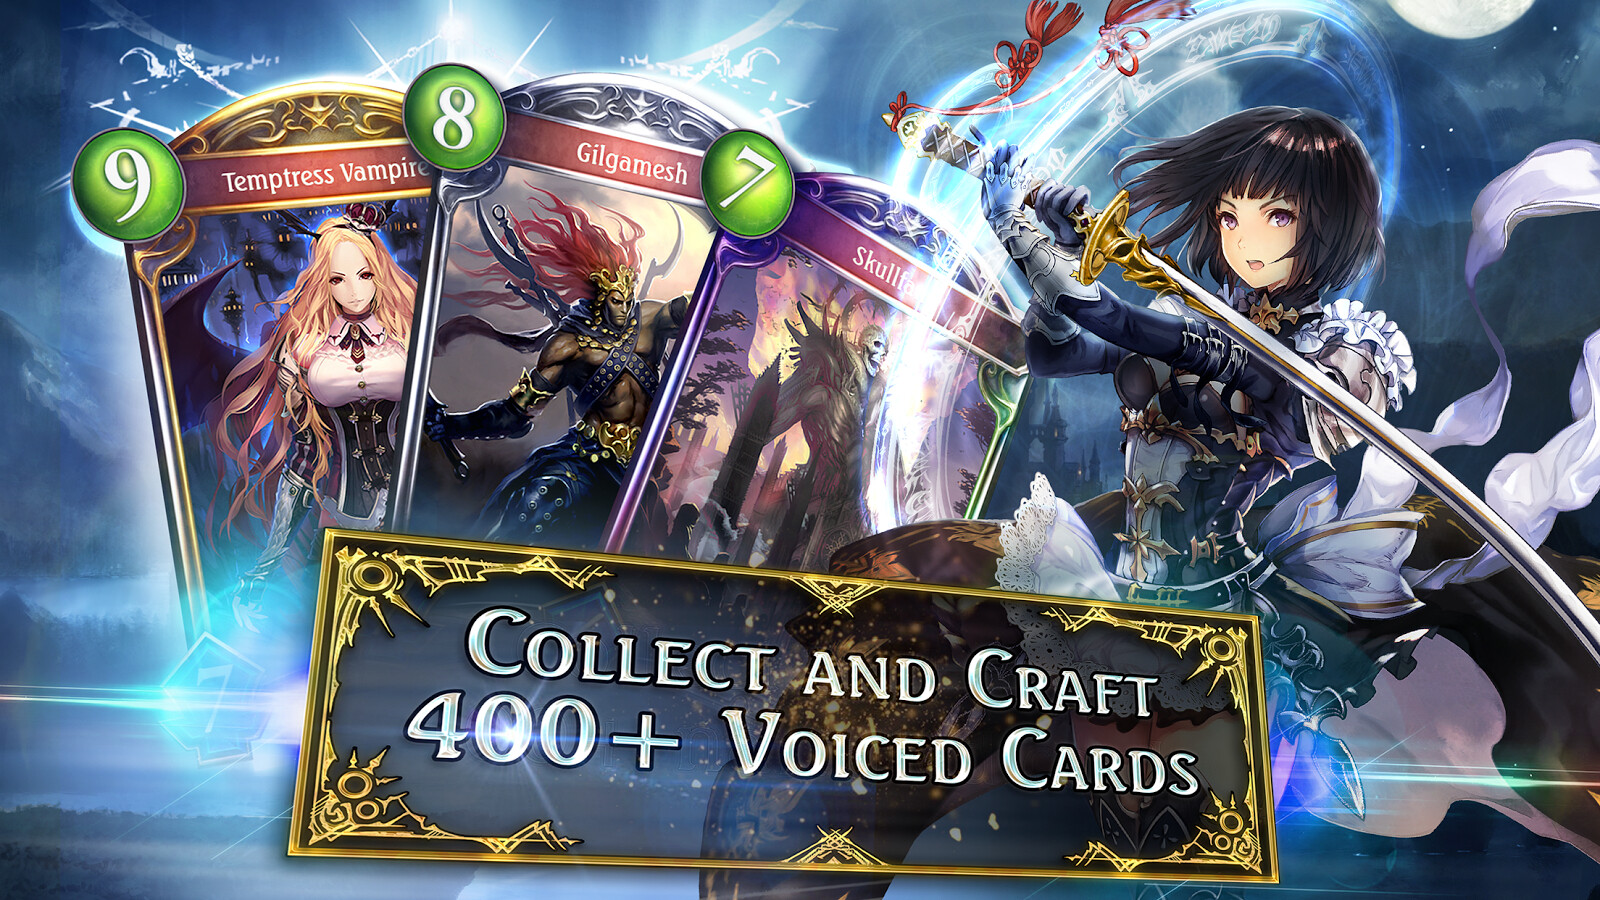 22 Best card battle games on Android similar to Hearthstone as of